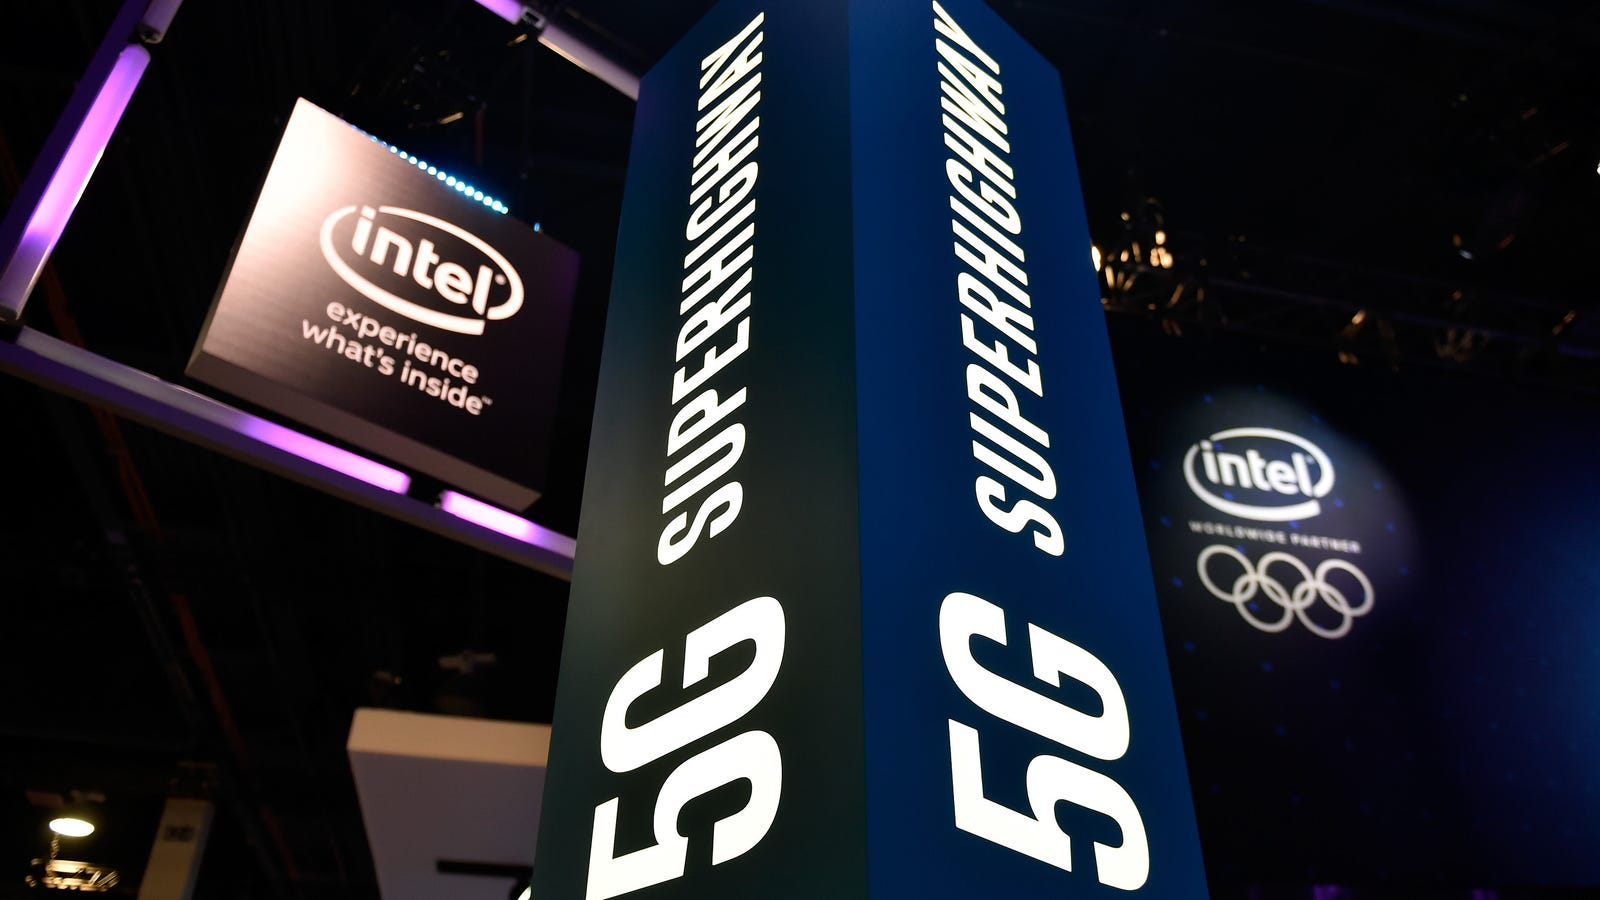 Report: Apple Poached Intel's Smartphone 5G Modem Lead Before Resolving Battle With Qualcomm - Gizmodo